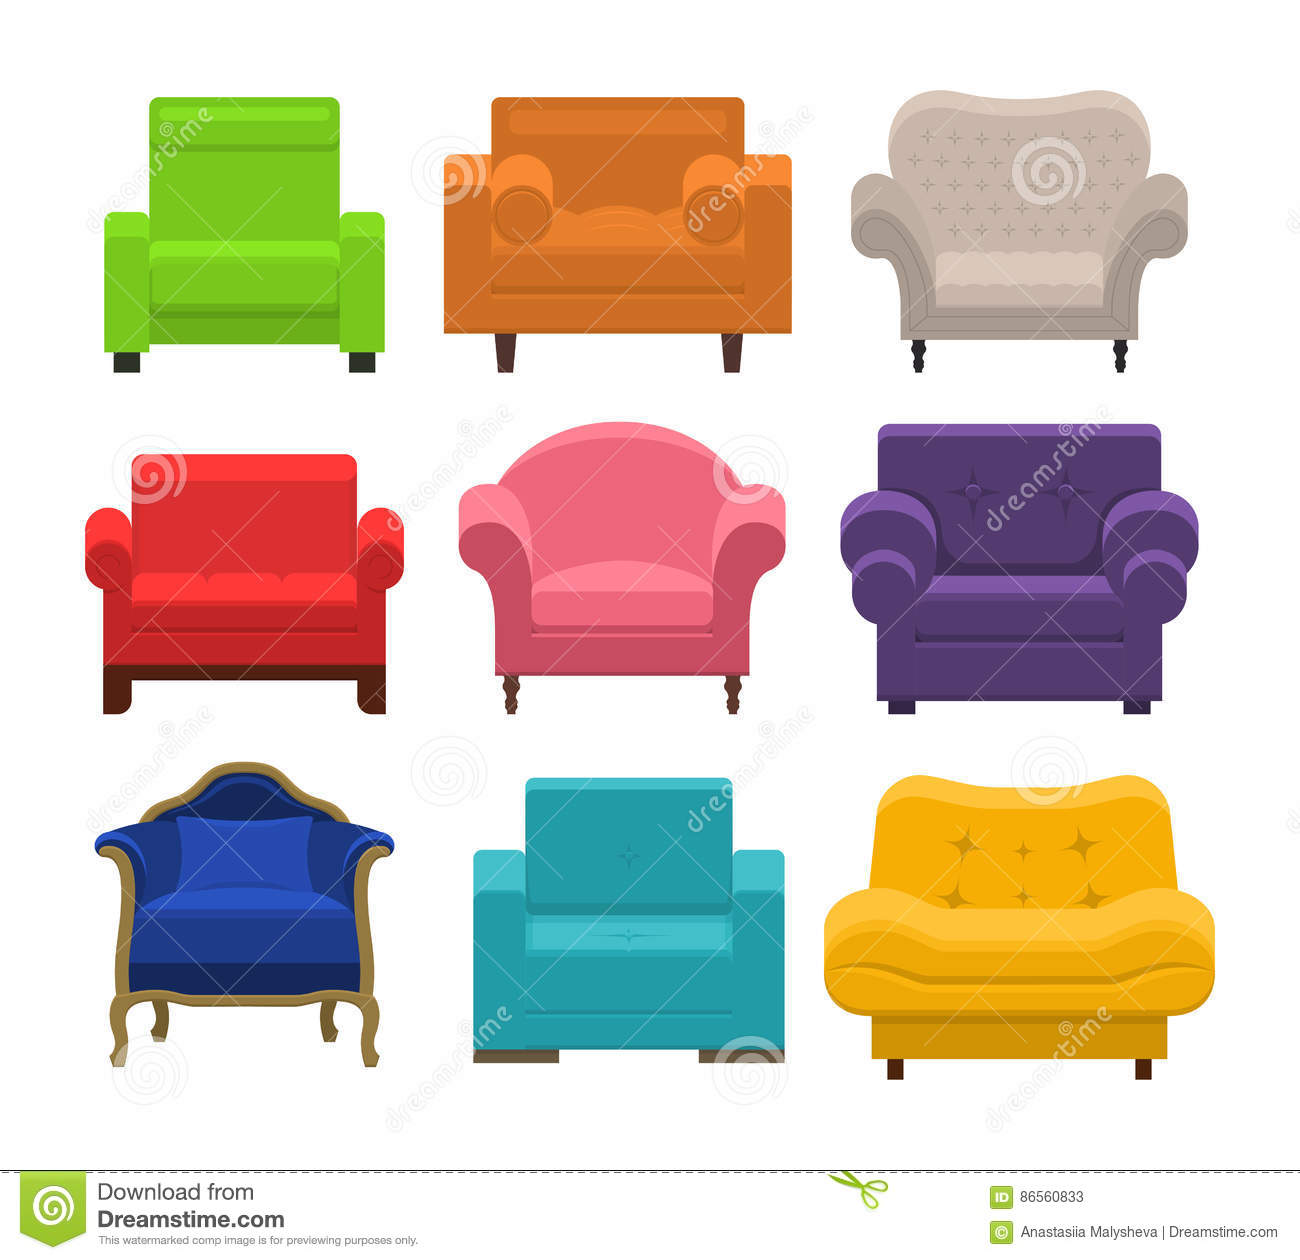 Attirant Collection Types Seating In Flat Style. Beautiful Design Elements    Classic, Retro Or Modern Furniture. Colorful Vintage And Comfort Chair.  Vector ...